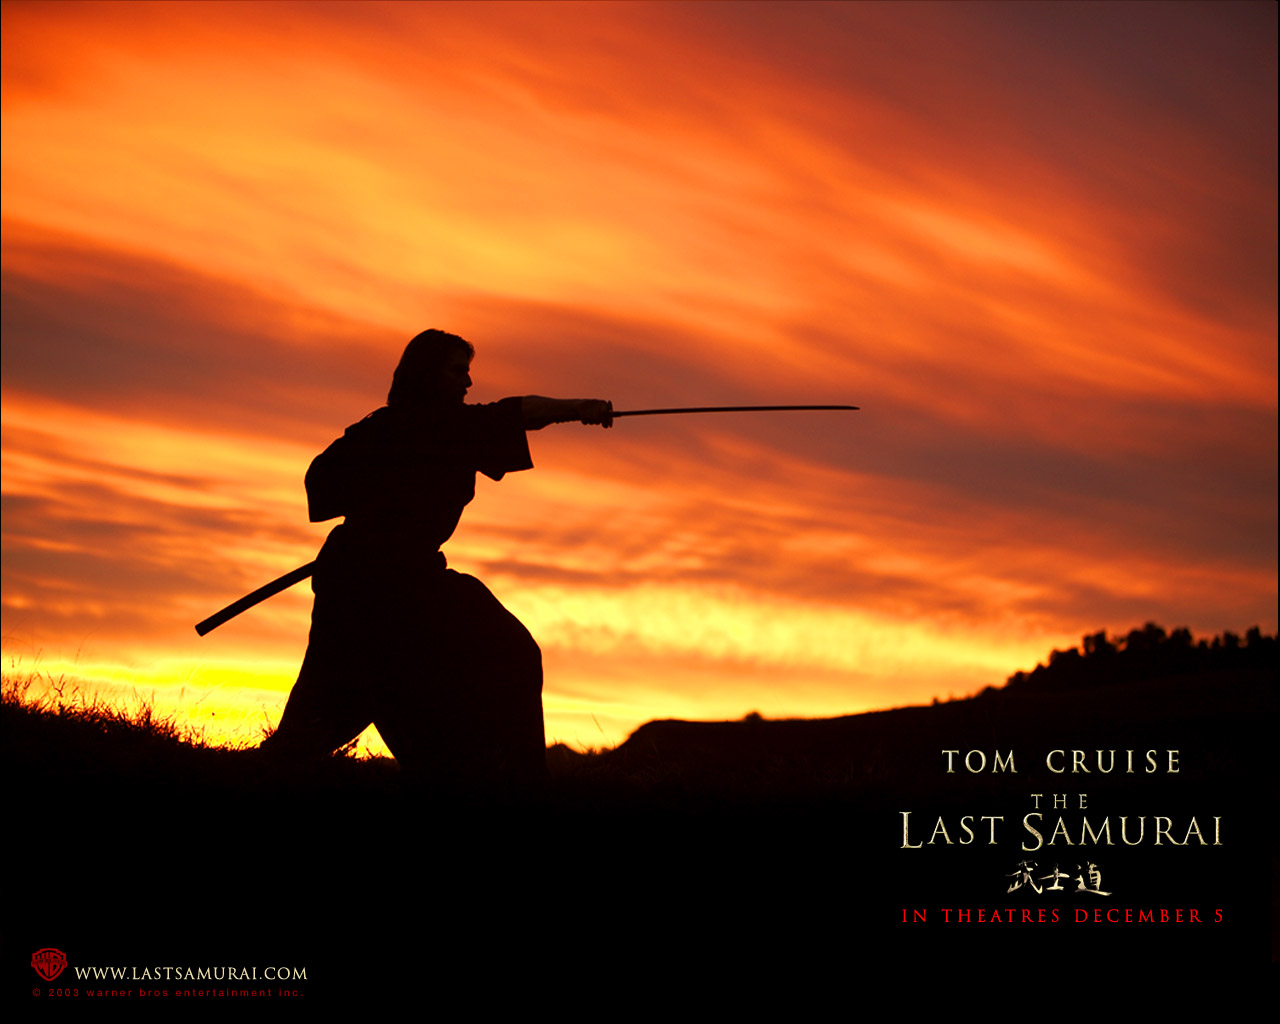 Last Samurai - Wallpaper 5 the_last_samurai_7.jpg. JPG Image [183.8 KB]